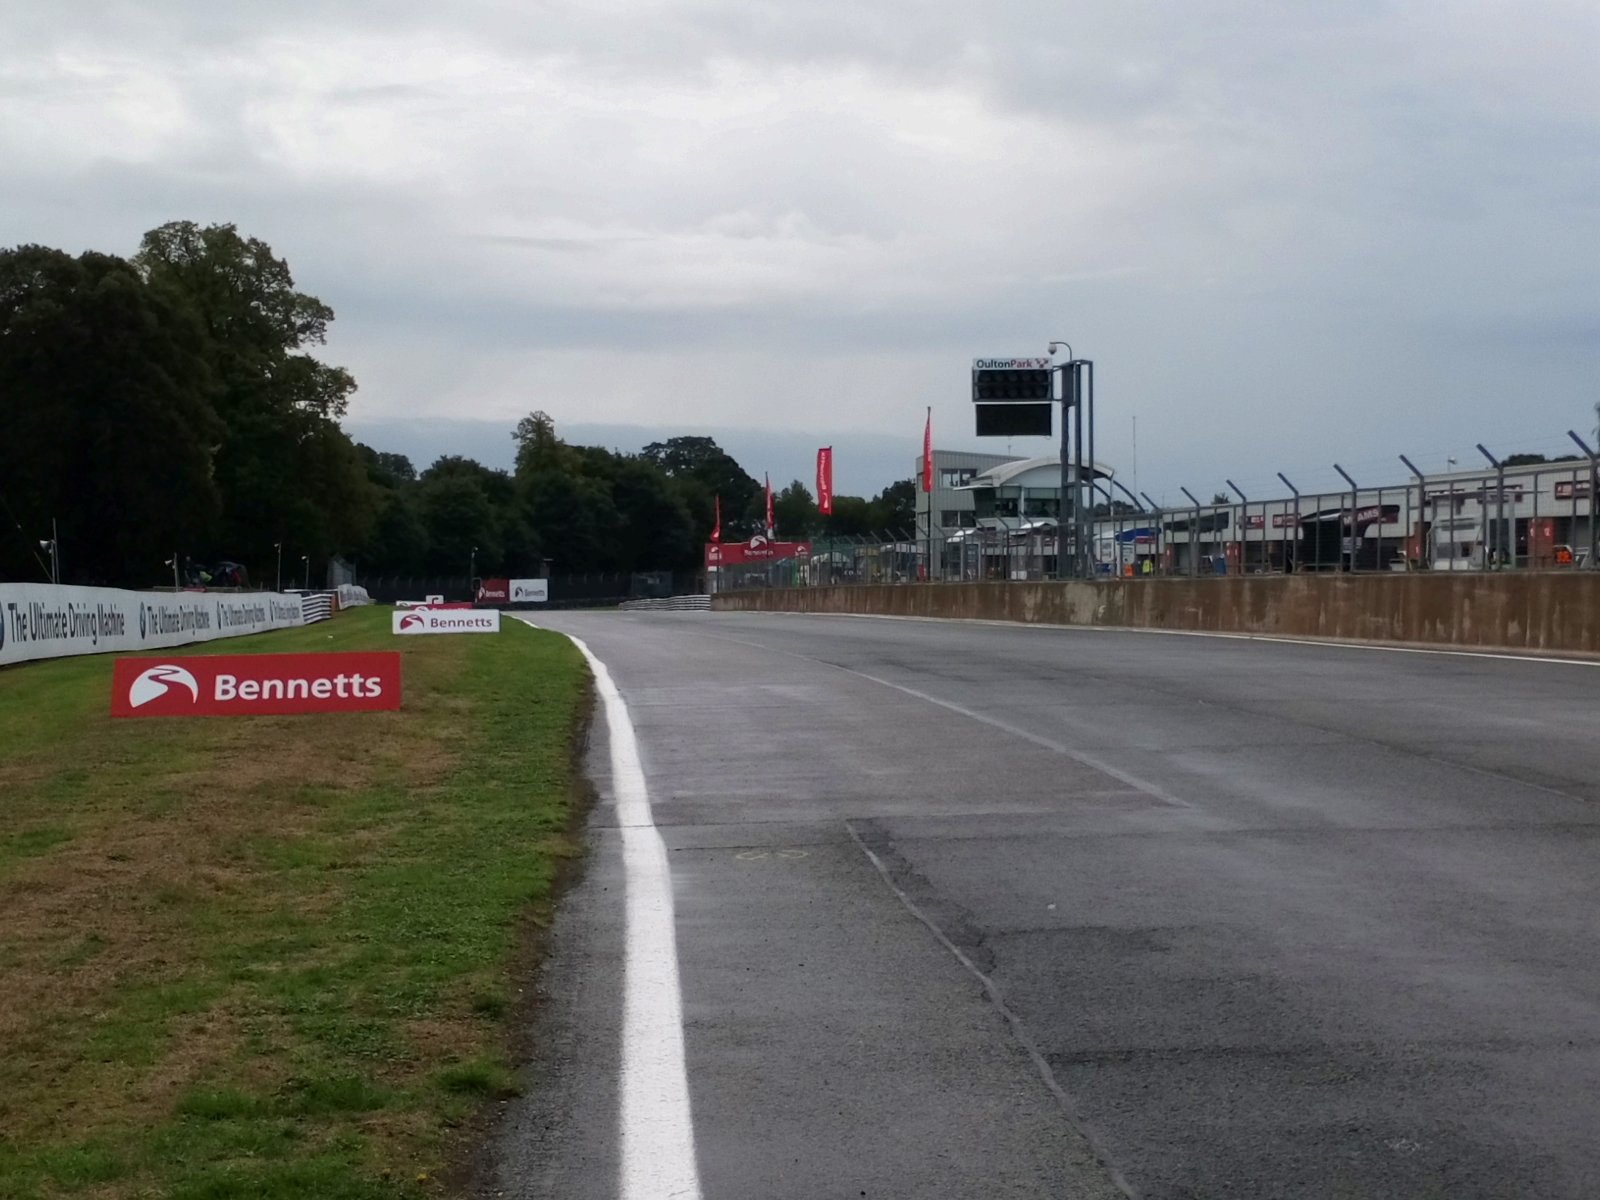 Damp Day For Racing